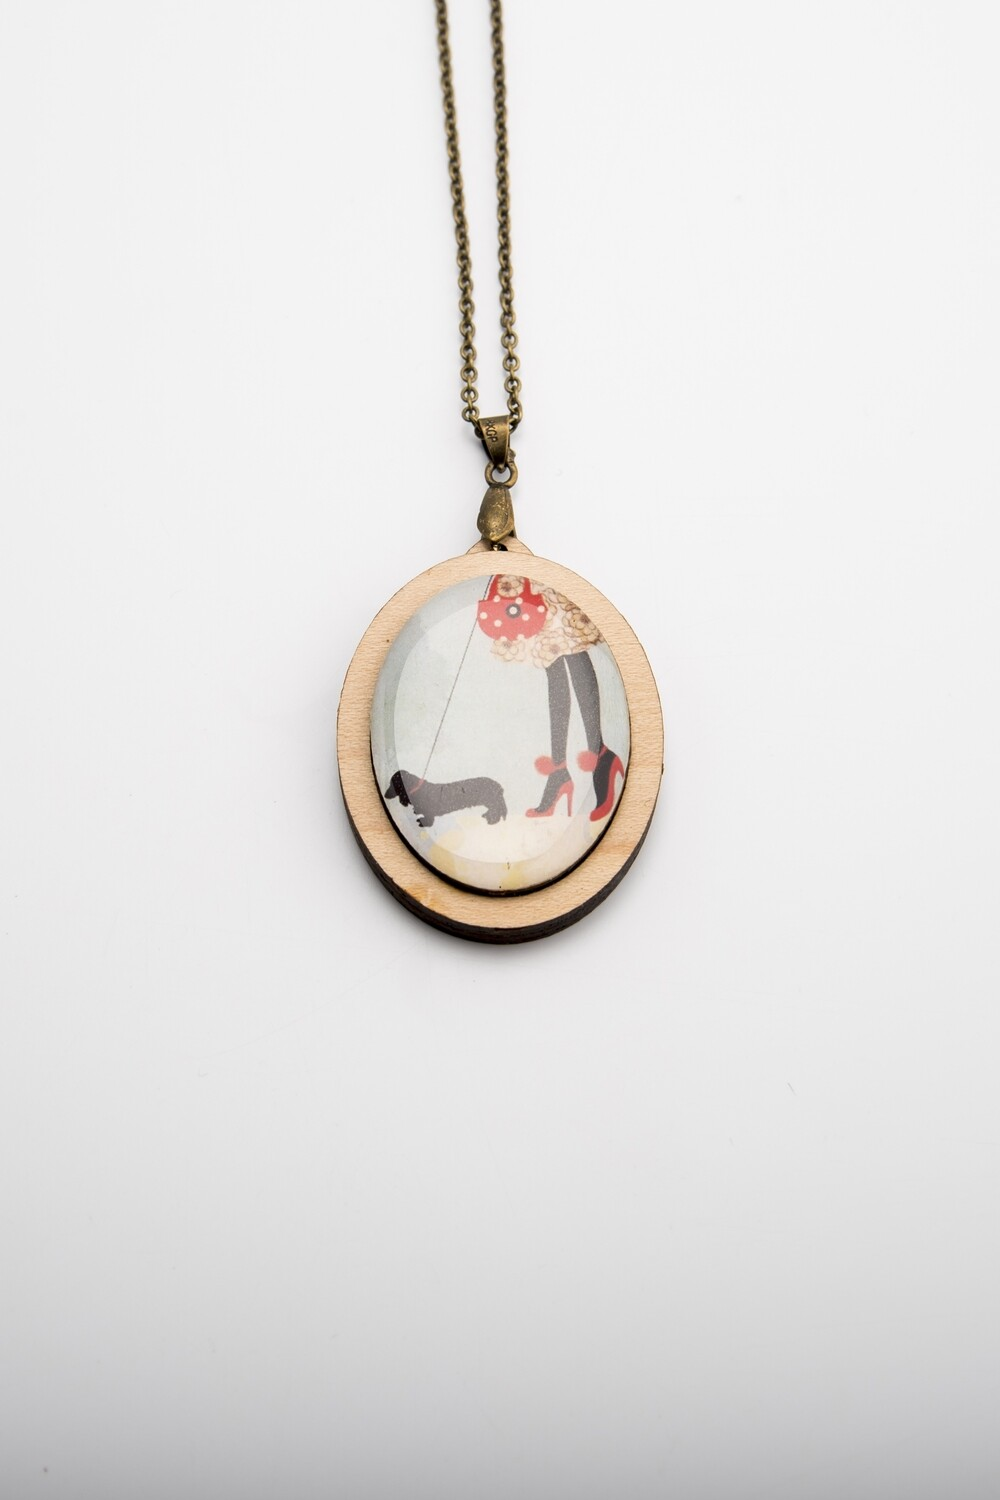 Lady with Dachshund at her feet - Pendant & Chain